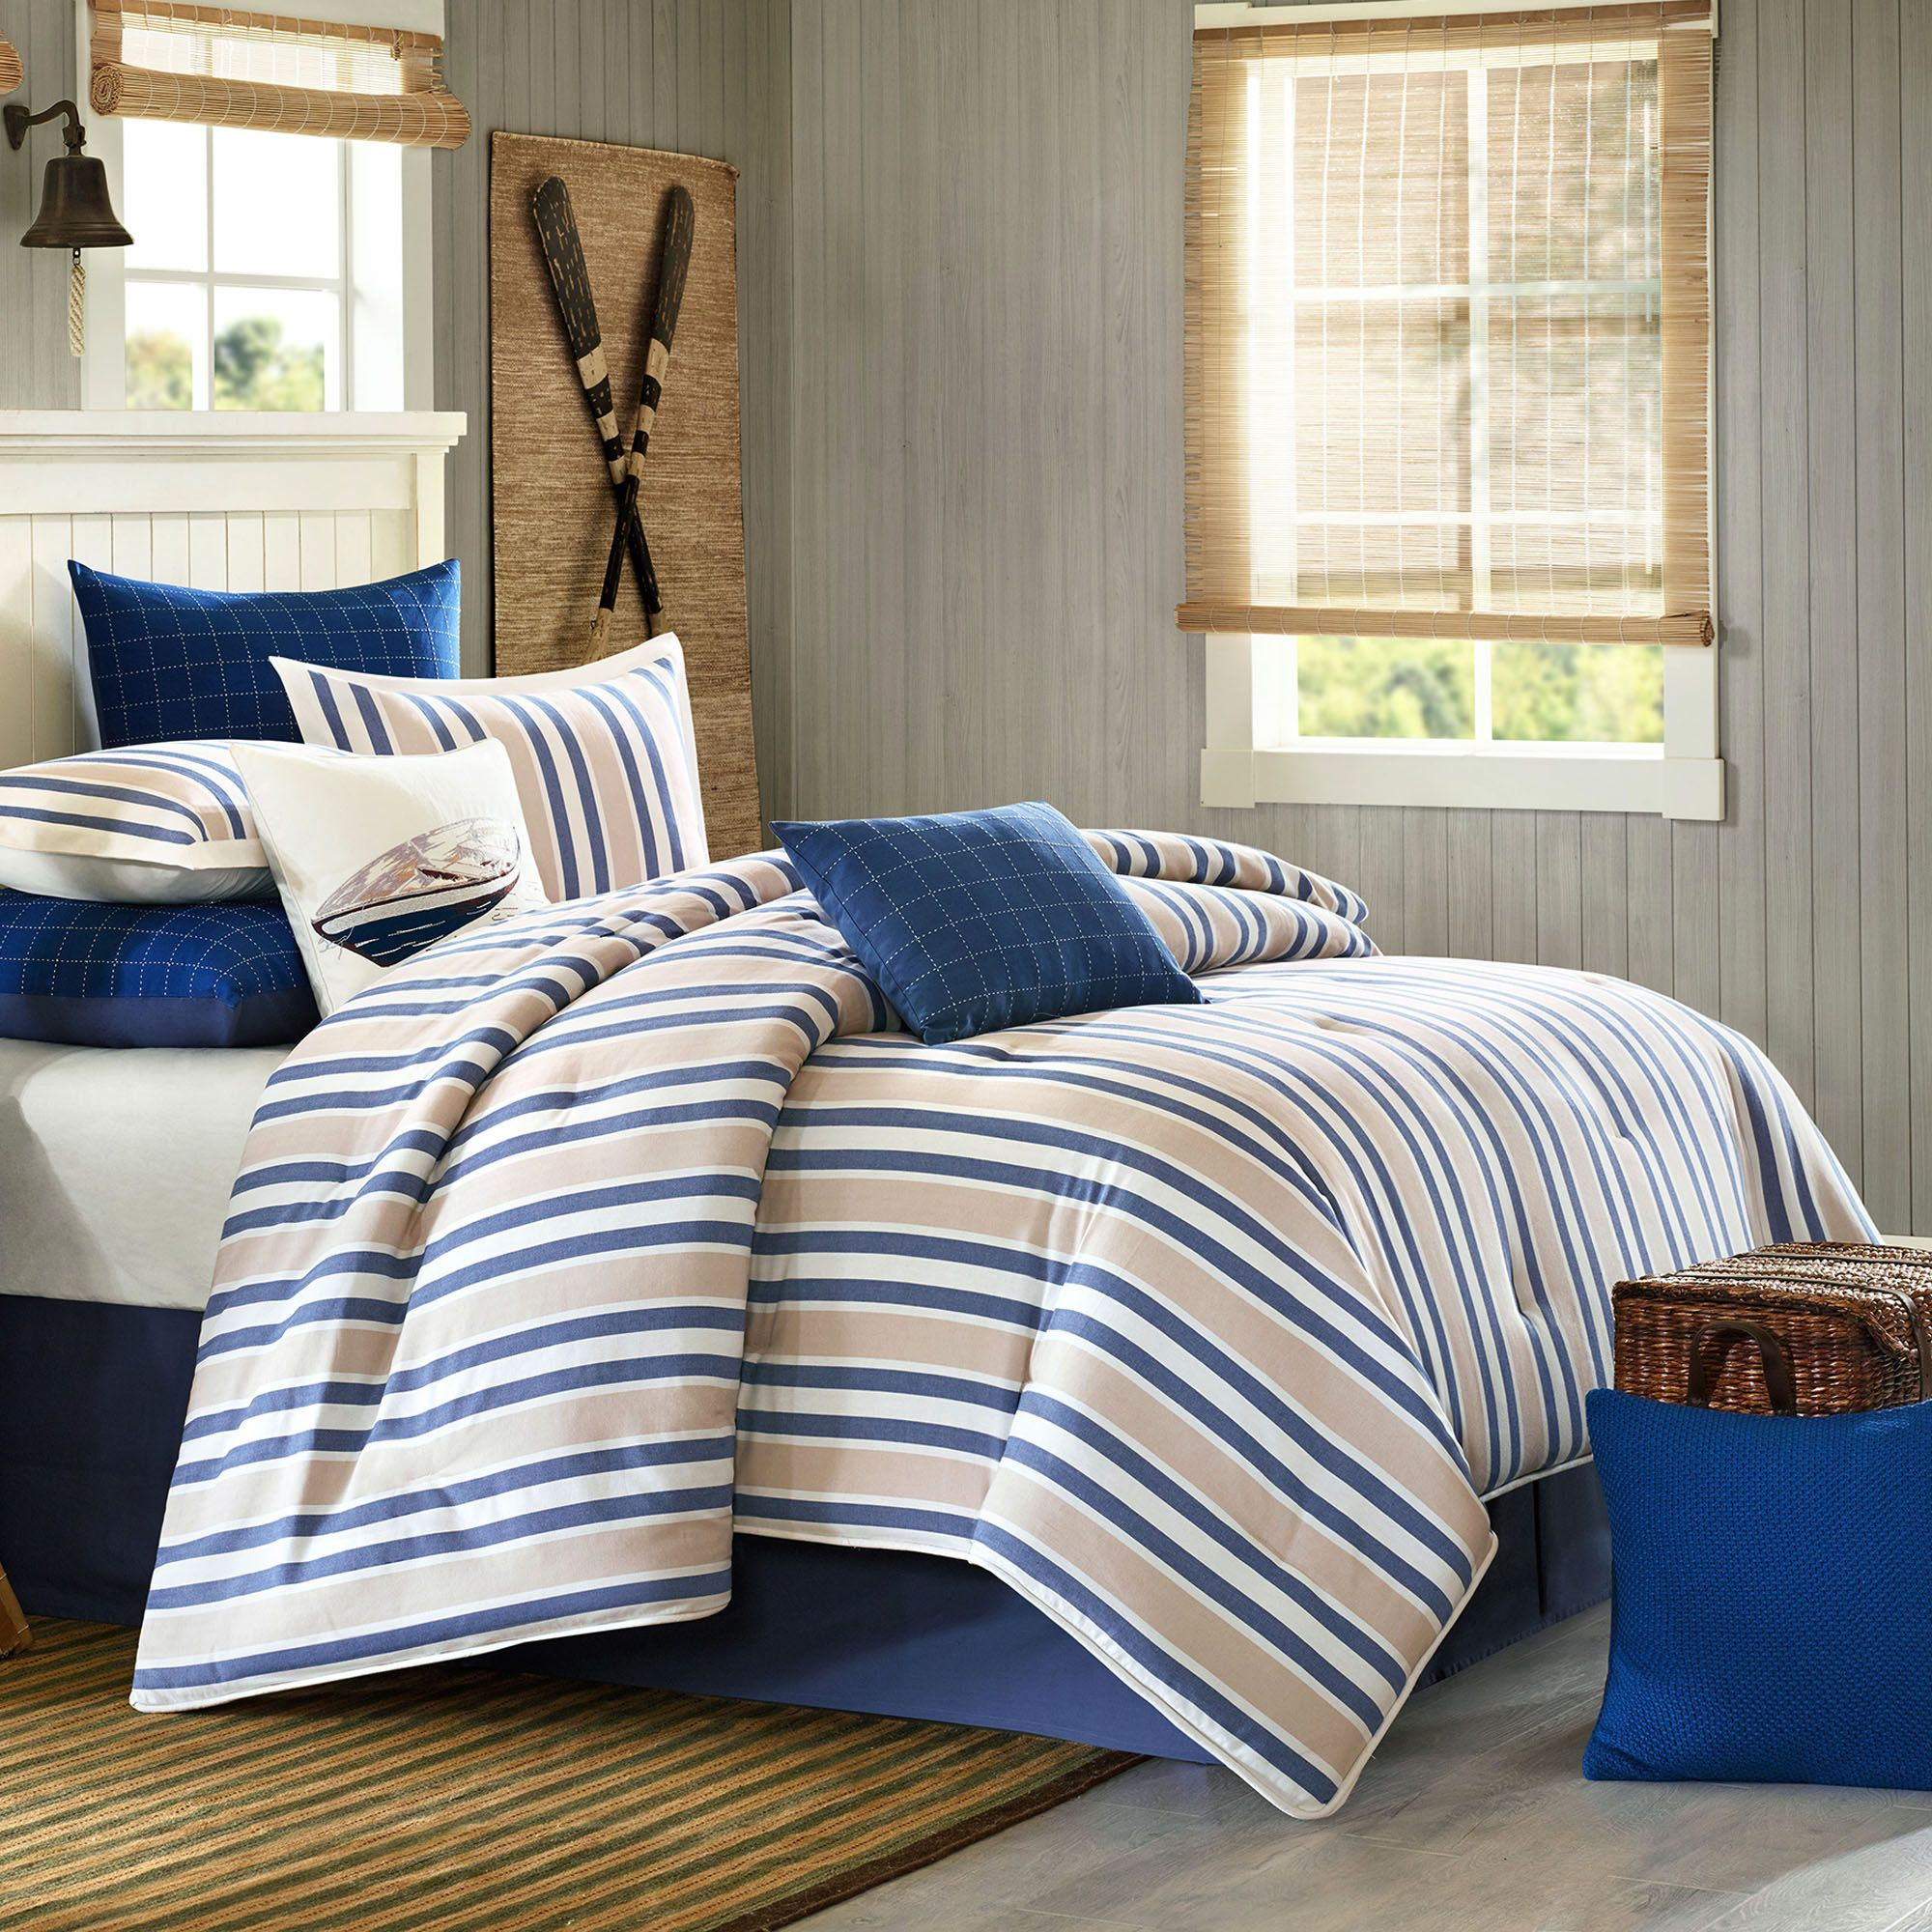 comforter grey comforters navy striped blue sets set bedding